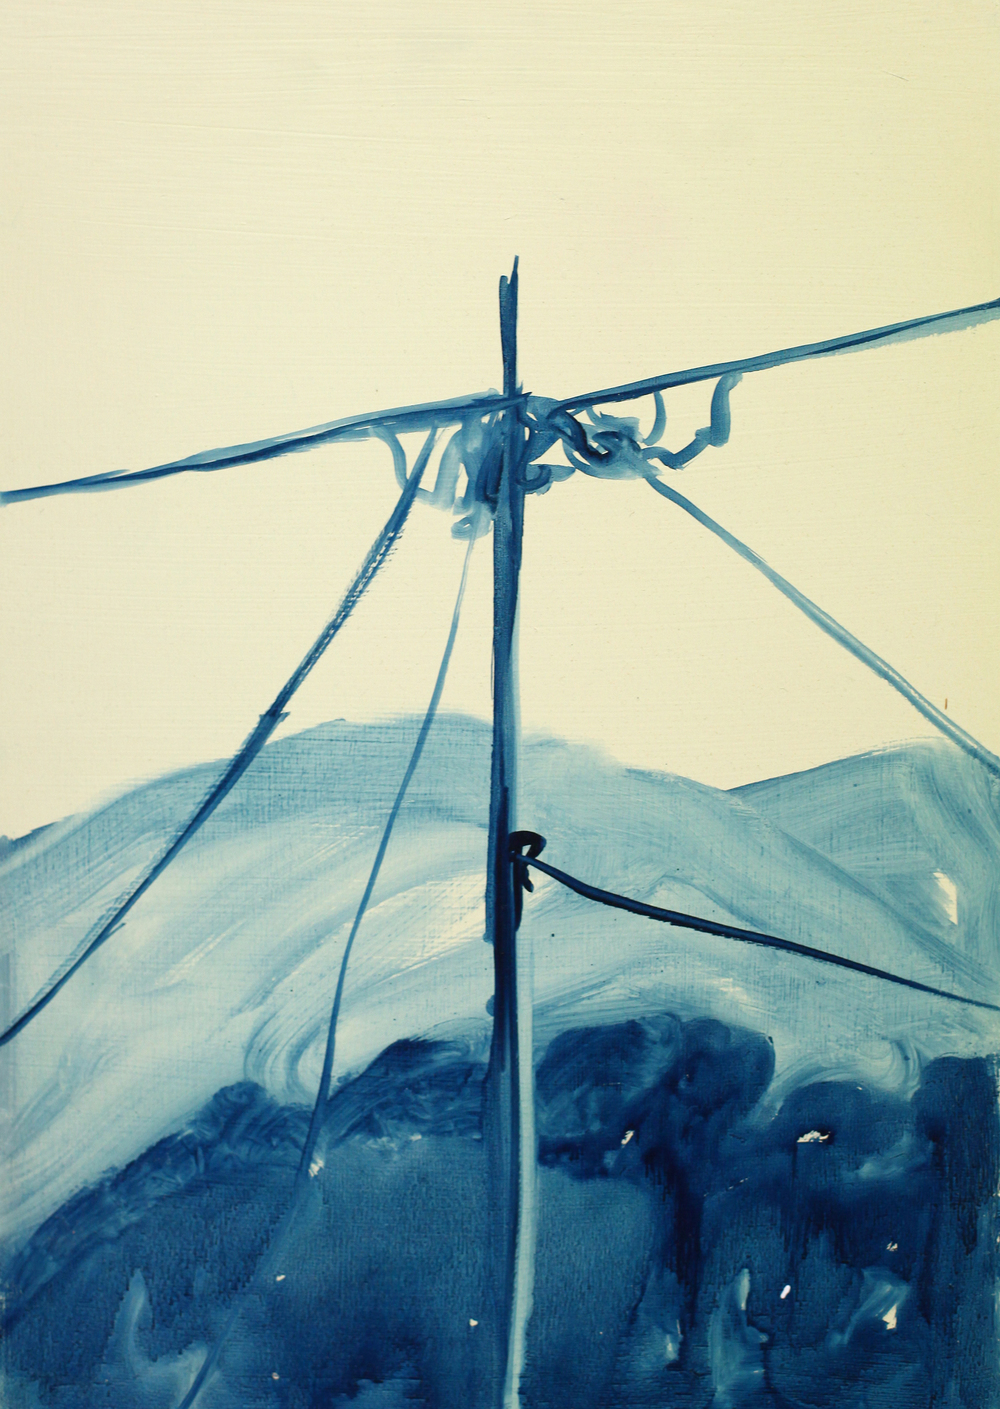 'View from the restaurant', 2012, oil and linseed oil on ply, 30 x 40 cm